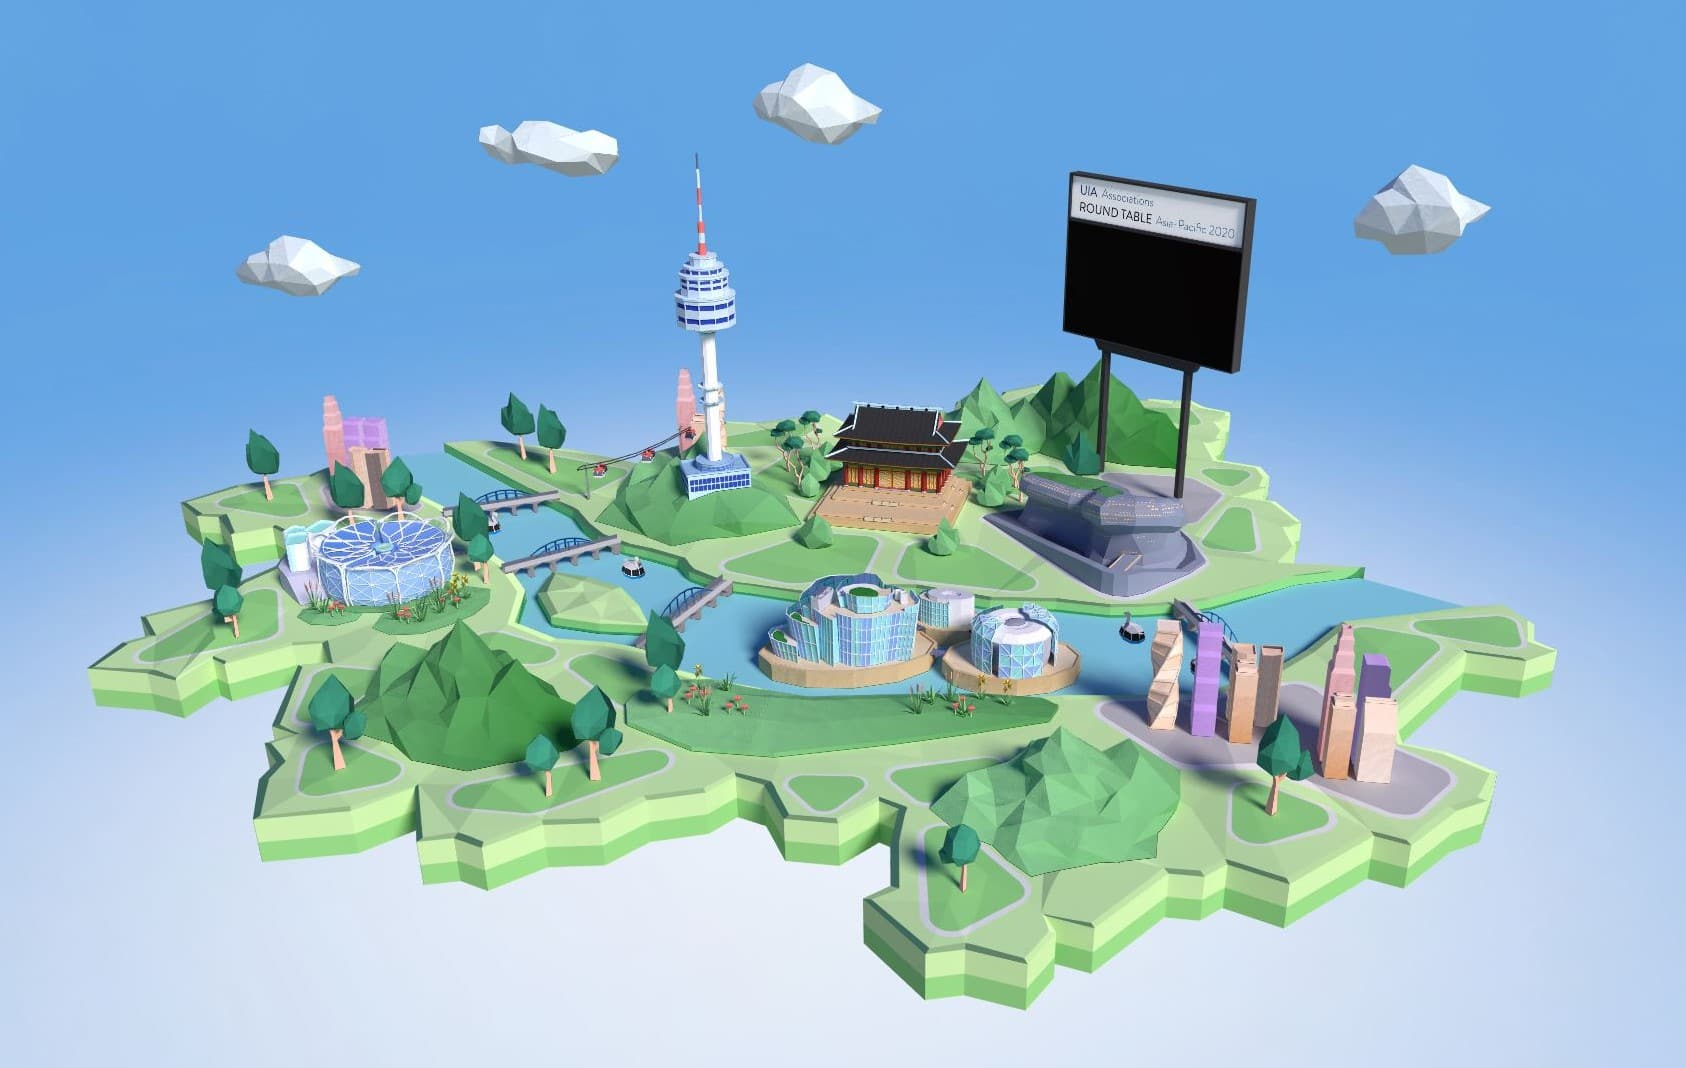 [Case Study] Seoul held UIA Associations Round Table Asia-Pacific 2020 in 3D virtual Seoul